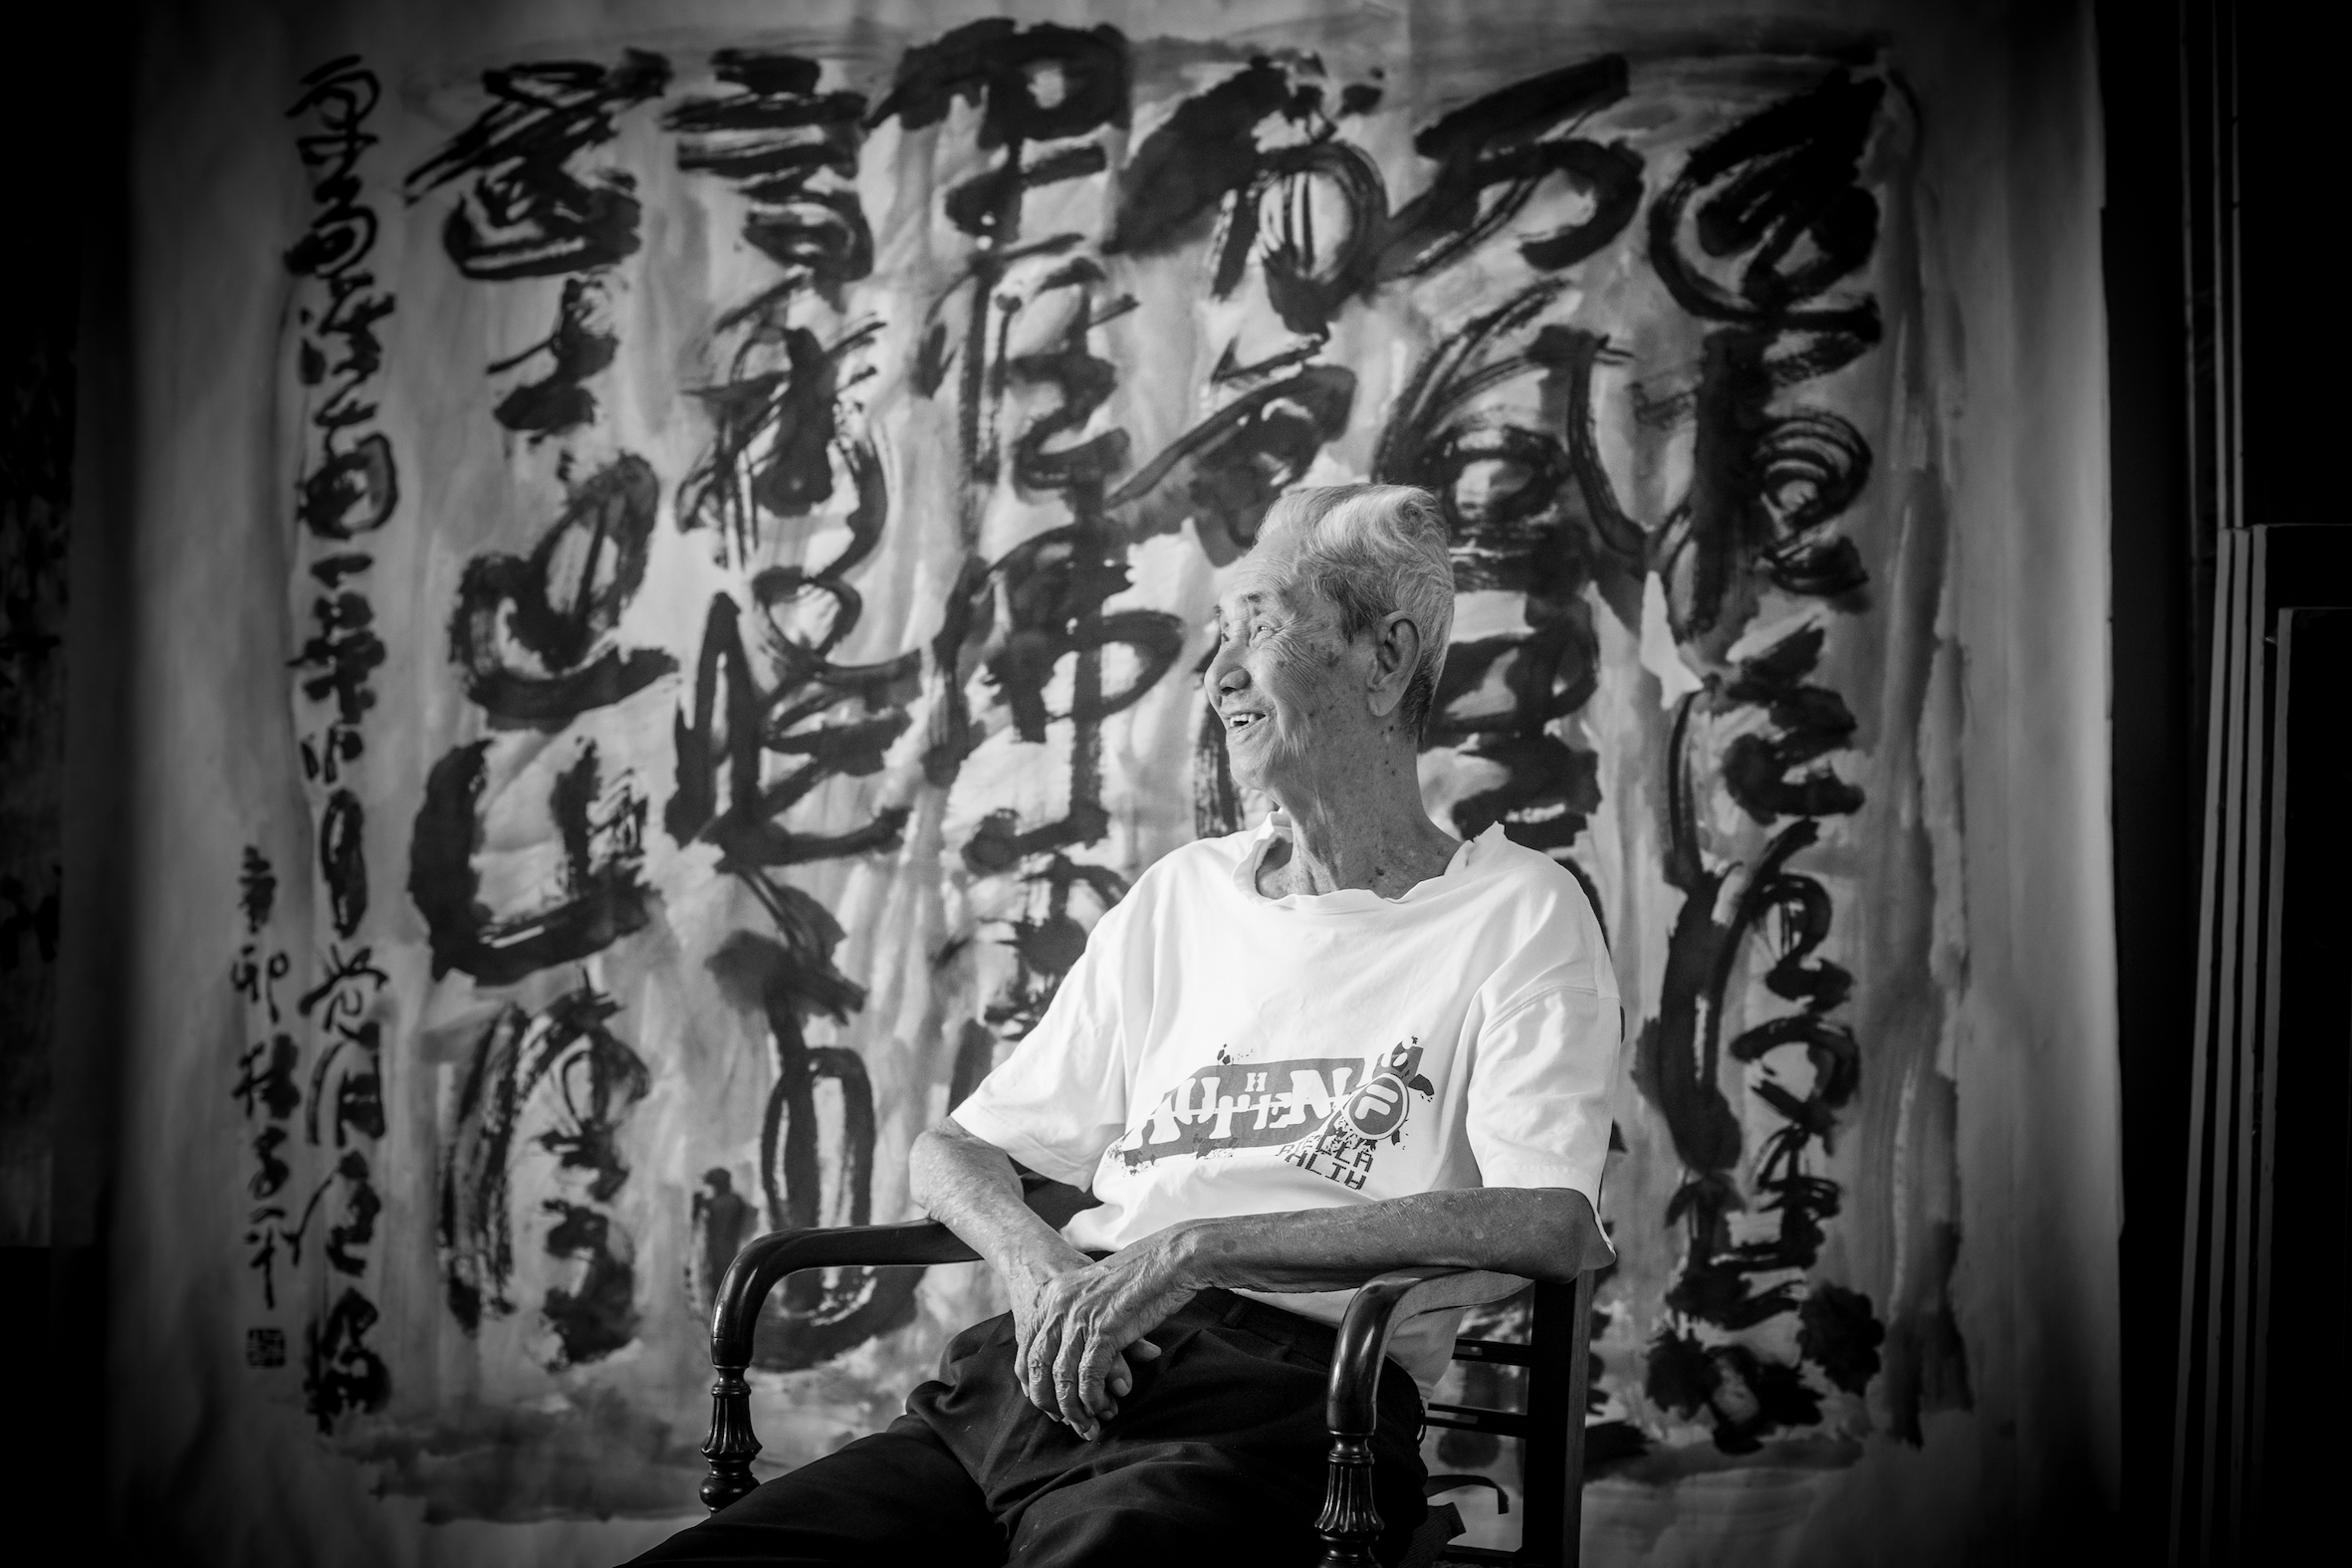 Interview with Lim Tze Peng, Singapore's oldest living artist